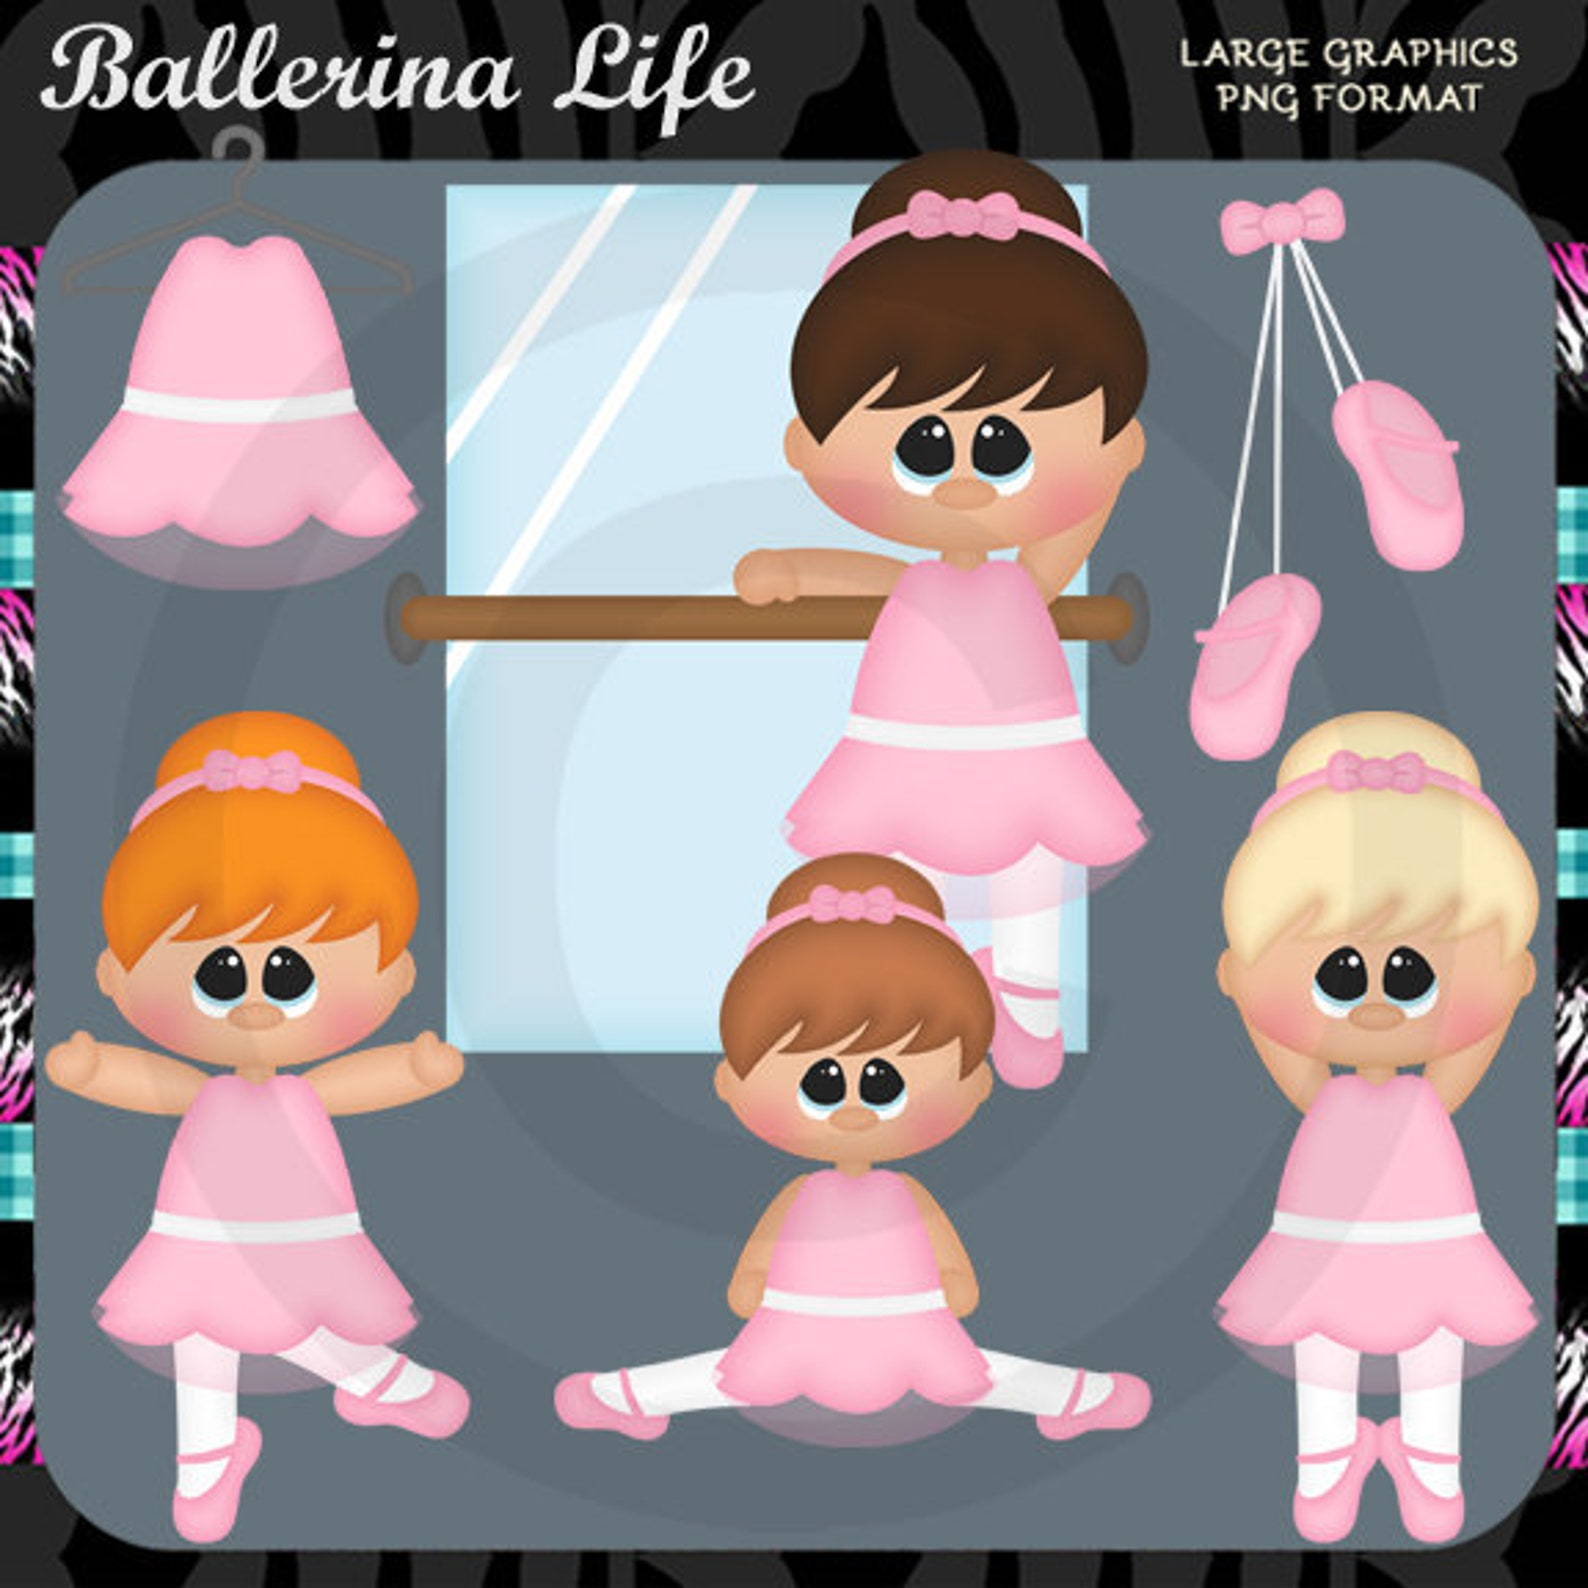 ballerina life 2018 ballet dance - instant download - commercial use digital clipart elements graphics set